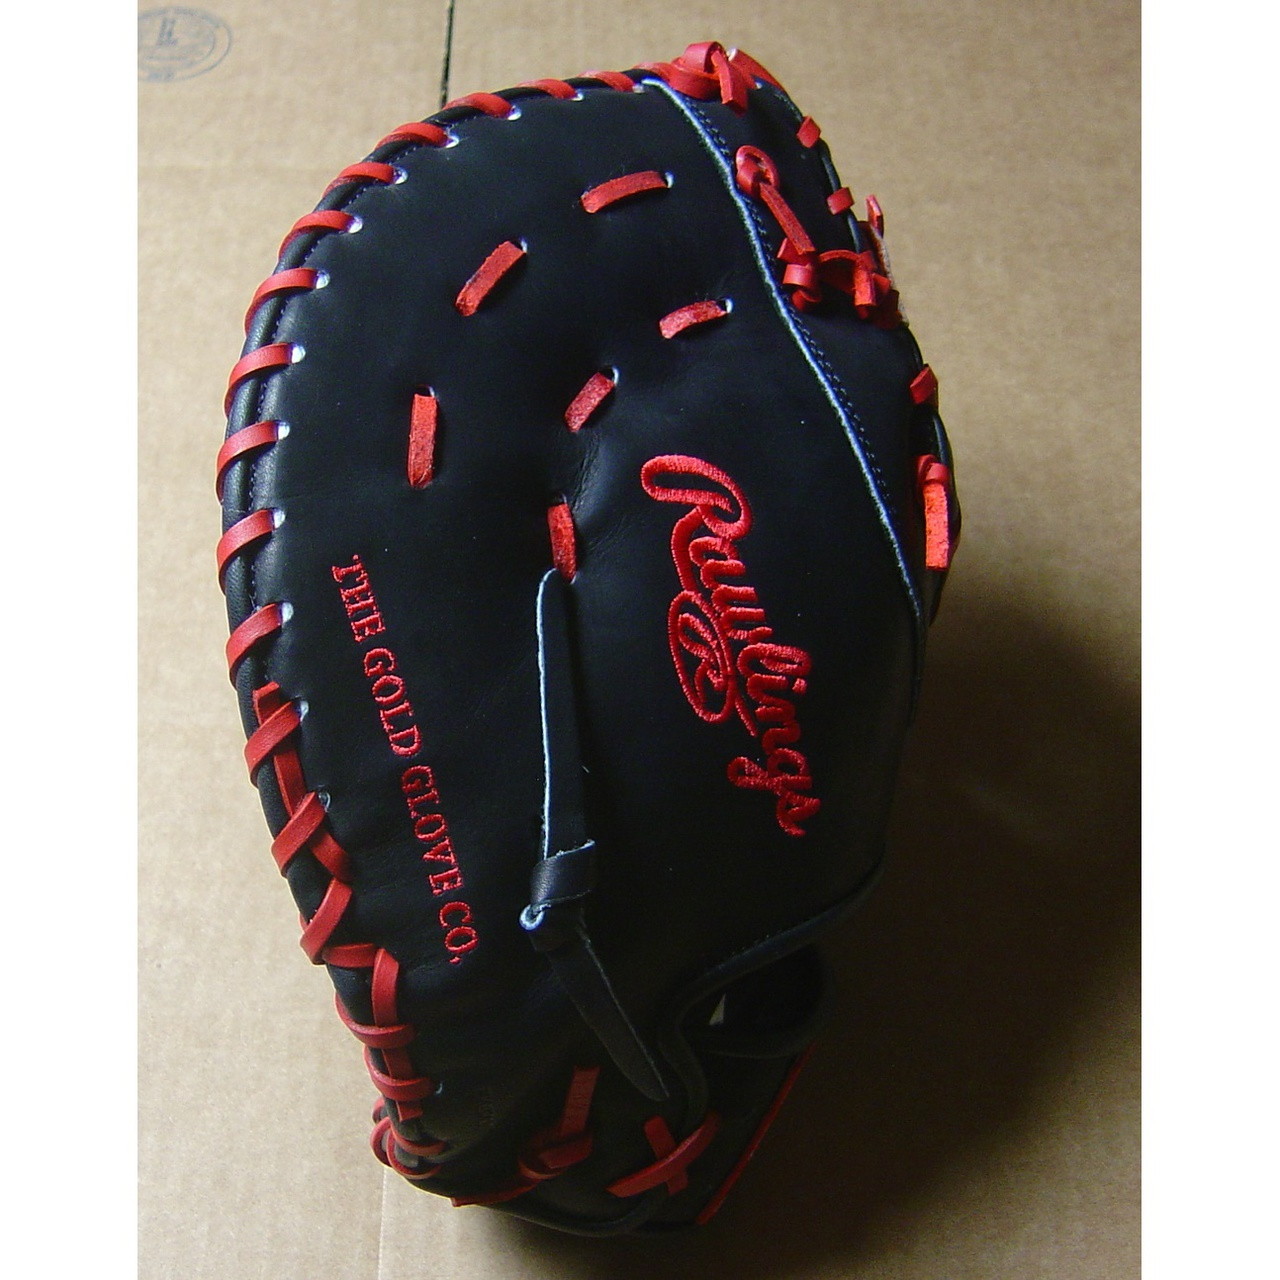 This Heart of the Hide players series 1st Base model features an open Web. With its 12.75 inch pattern, this glove is designed to scoop and flatten out wide so you can trap the ball as it comes from any direction. The Heart of the Hide players series features the game-day patterns of the Rawlings Advisory staff. Available in select Heart of the Hide model, these high quality gloves have defined the careers of those deemed The Finest in the Field and are now available to elite athletes looking to join the next class of defensive greats. This glove is the same pattern worn by Prince Fielder.